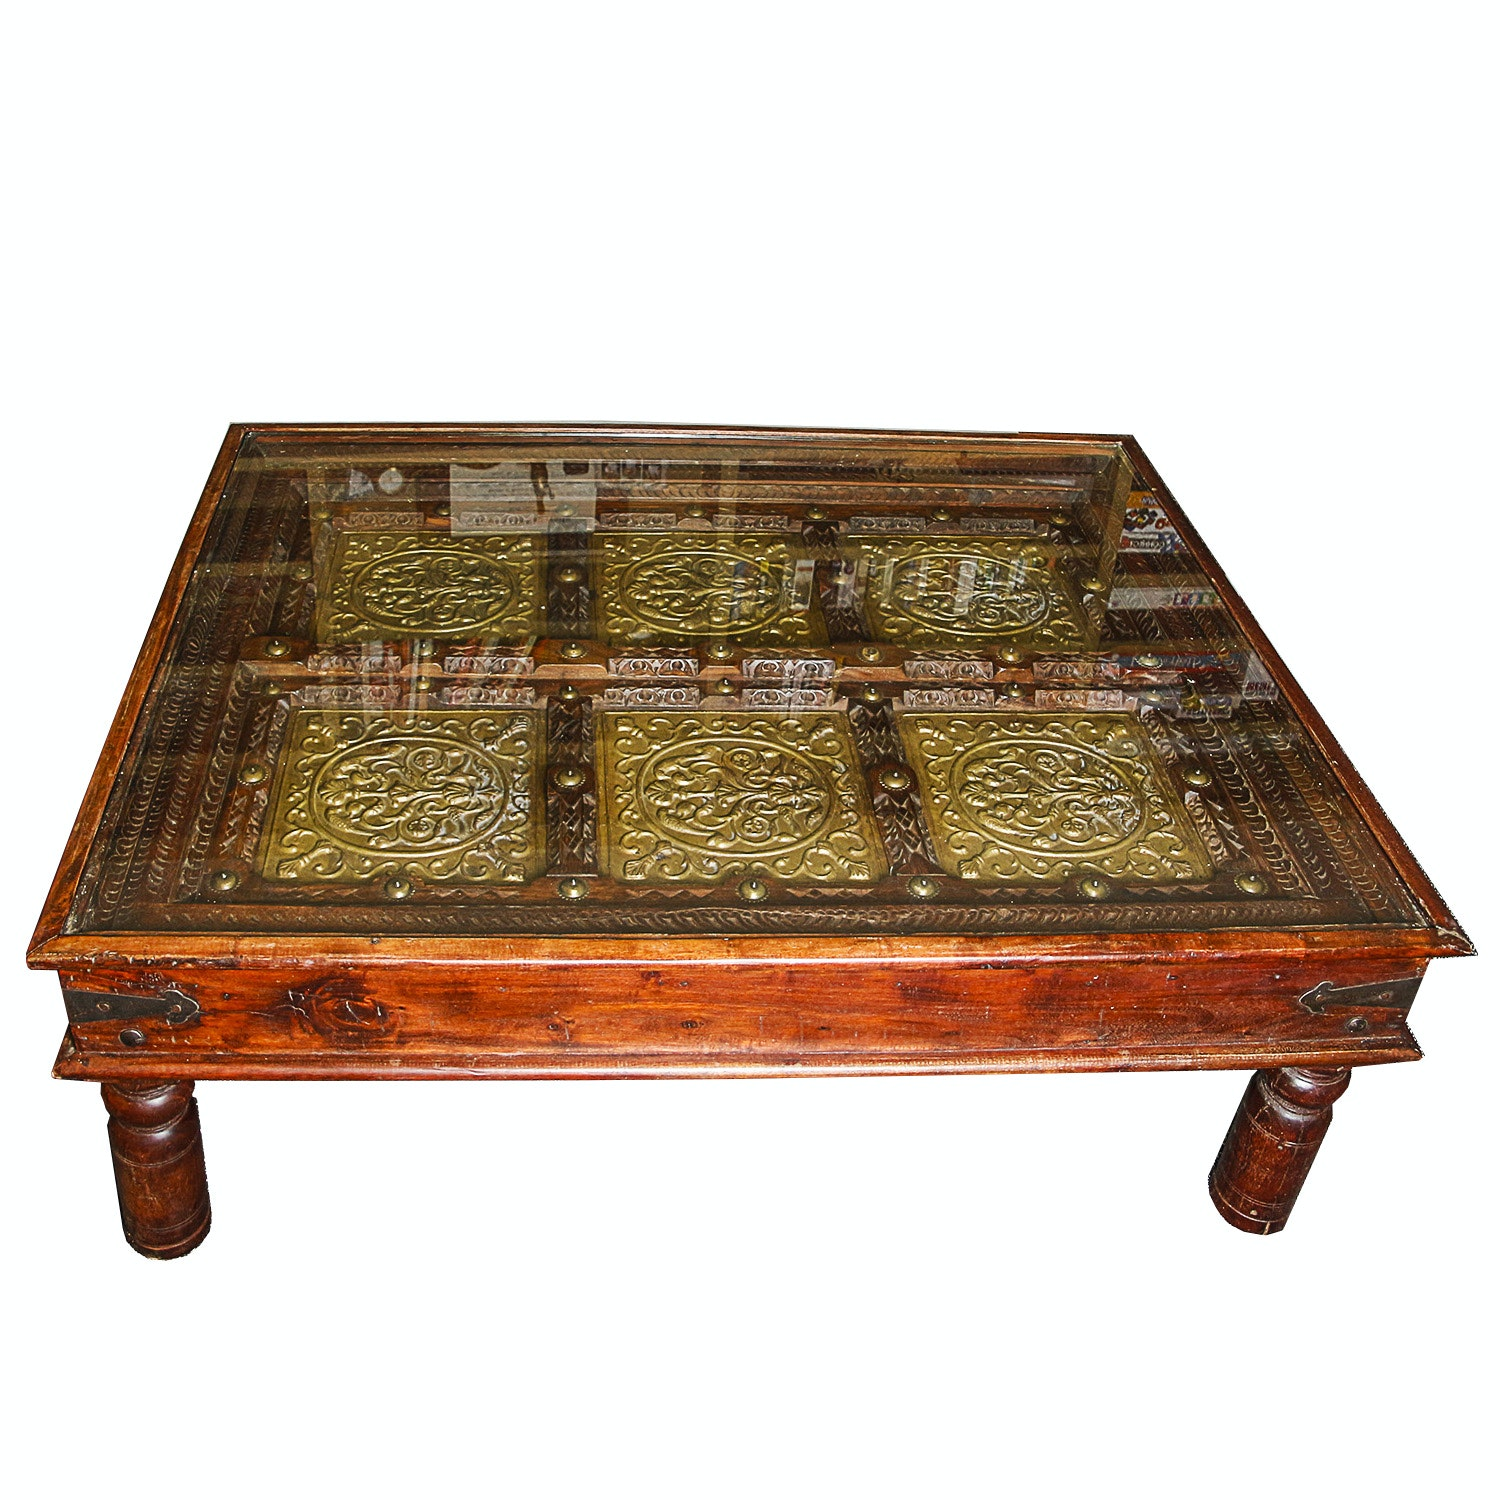 Vintage British Indian Inspired Glass Top Coffee Table